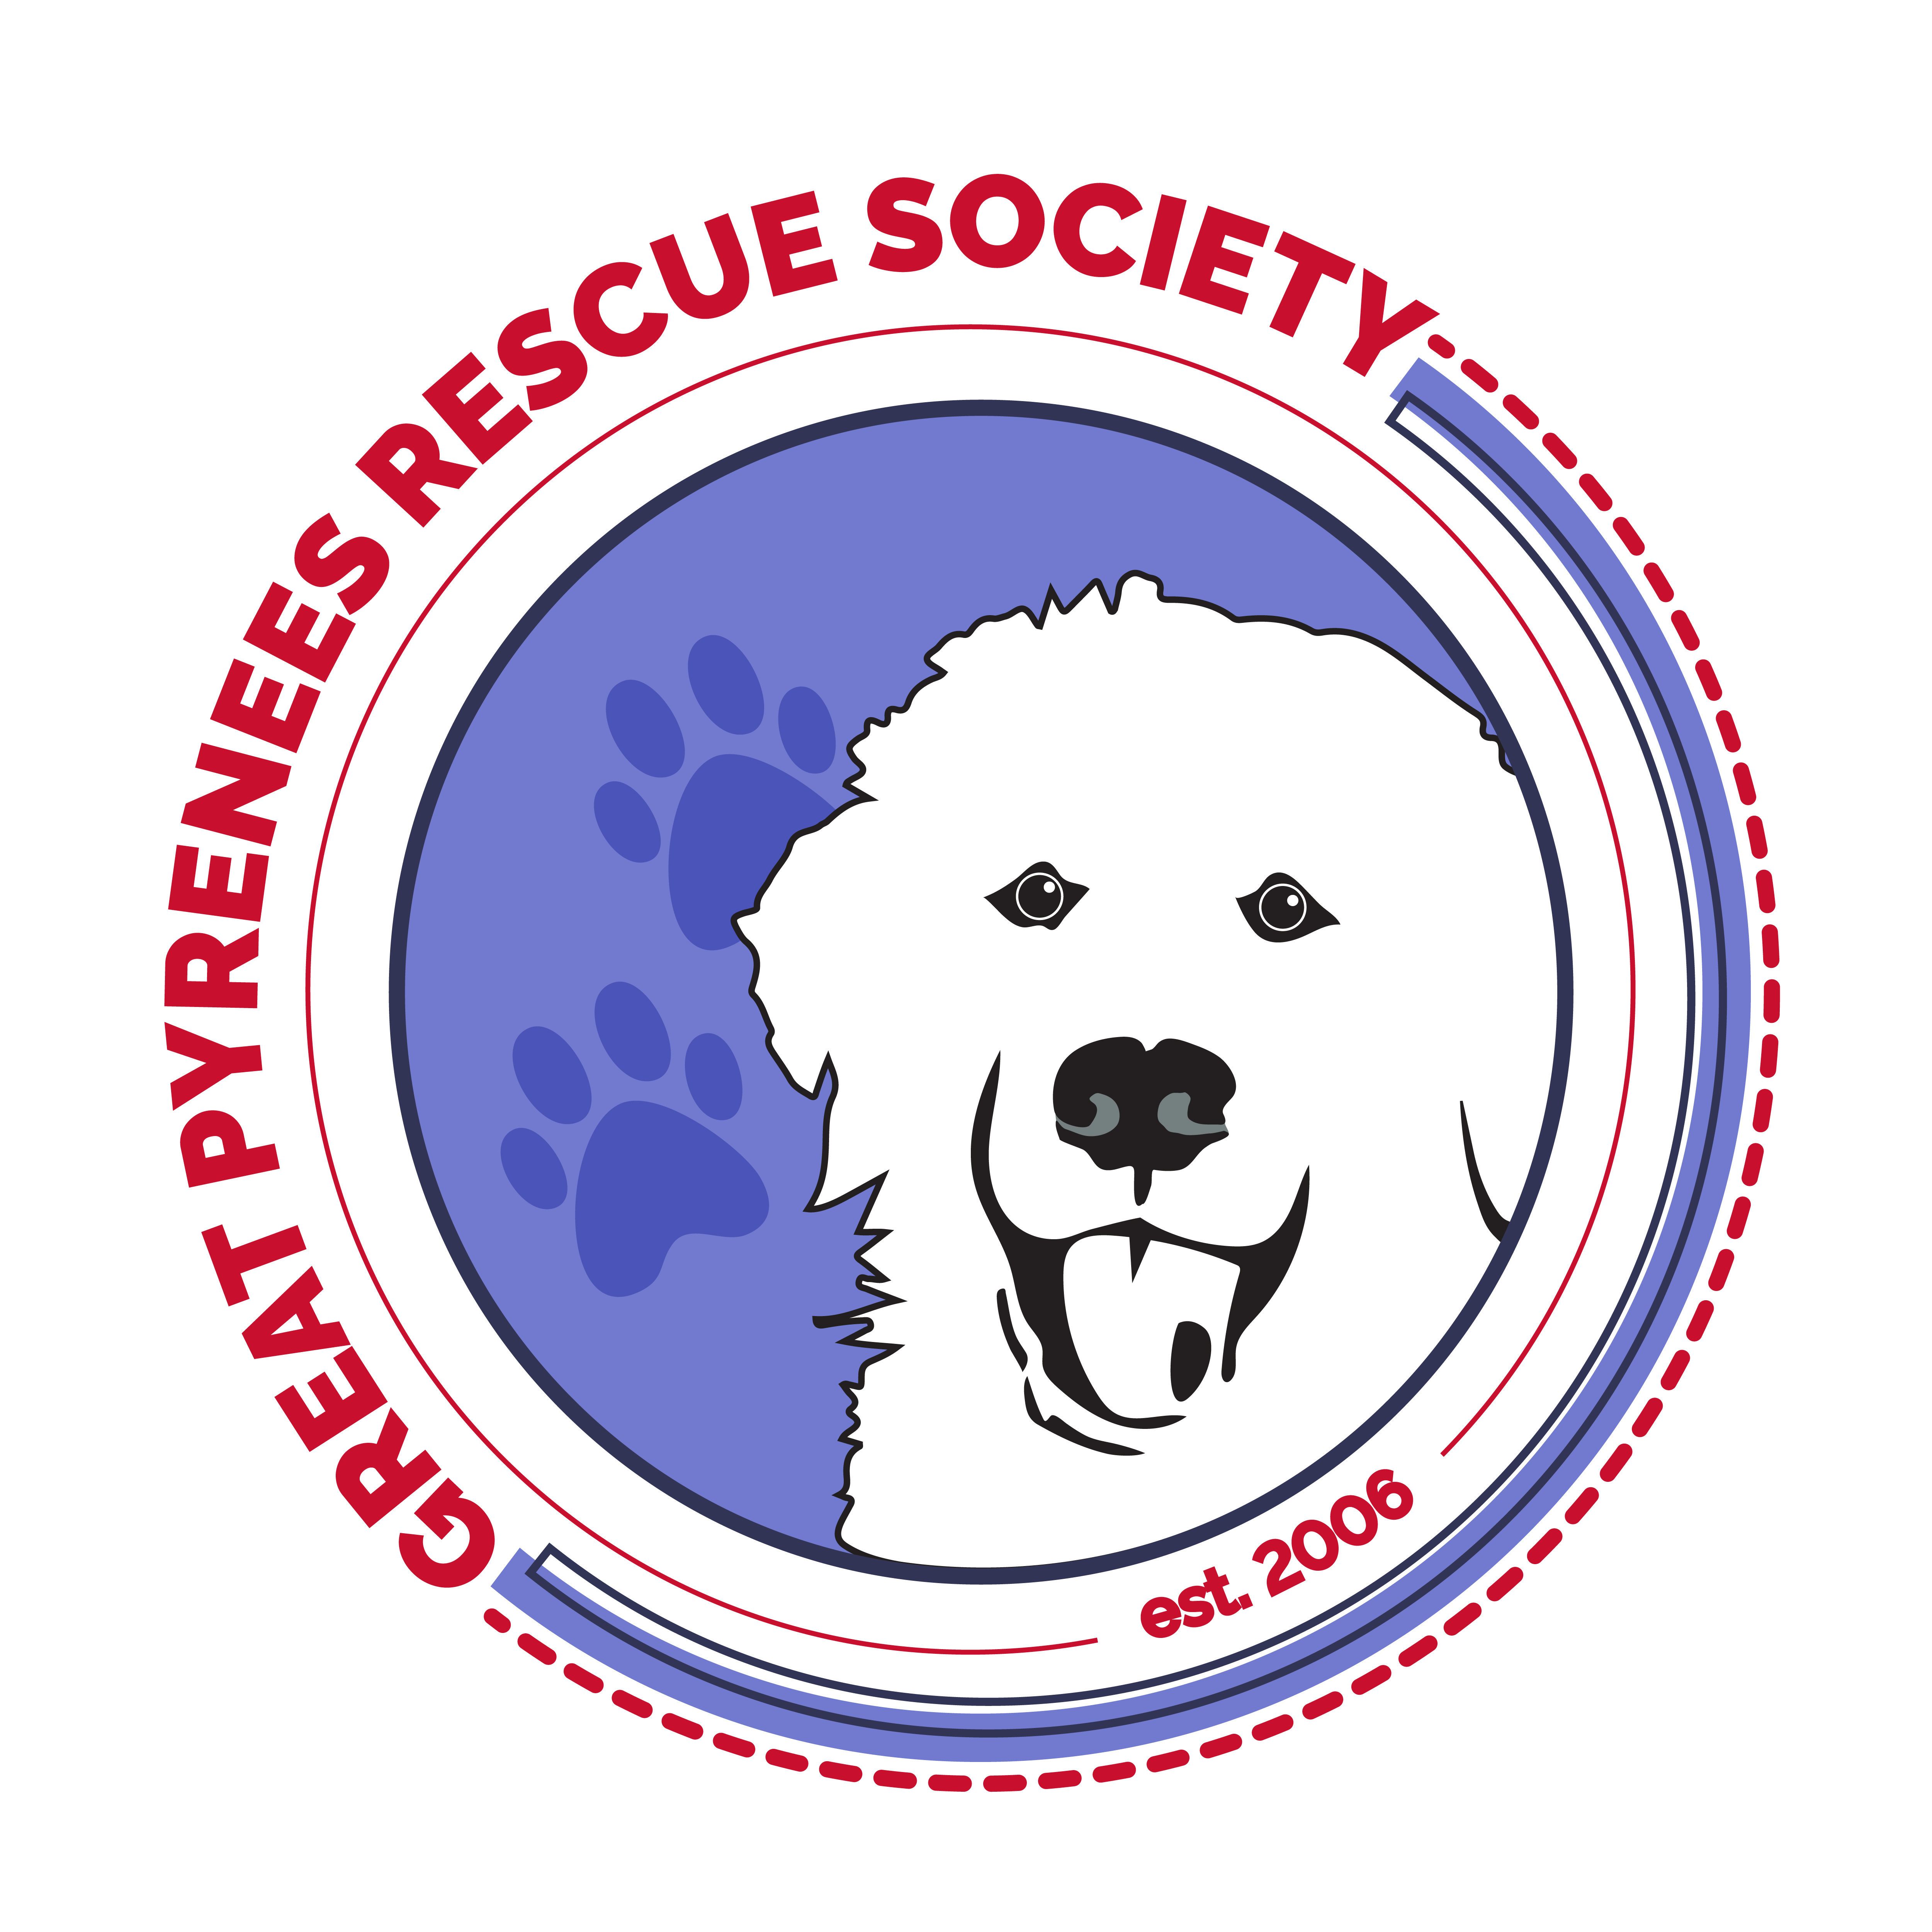 Great Pyrenees Rescue Society